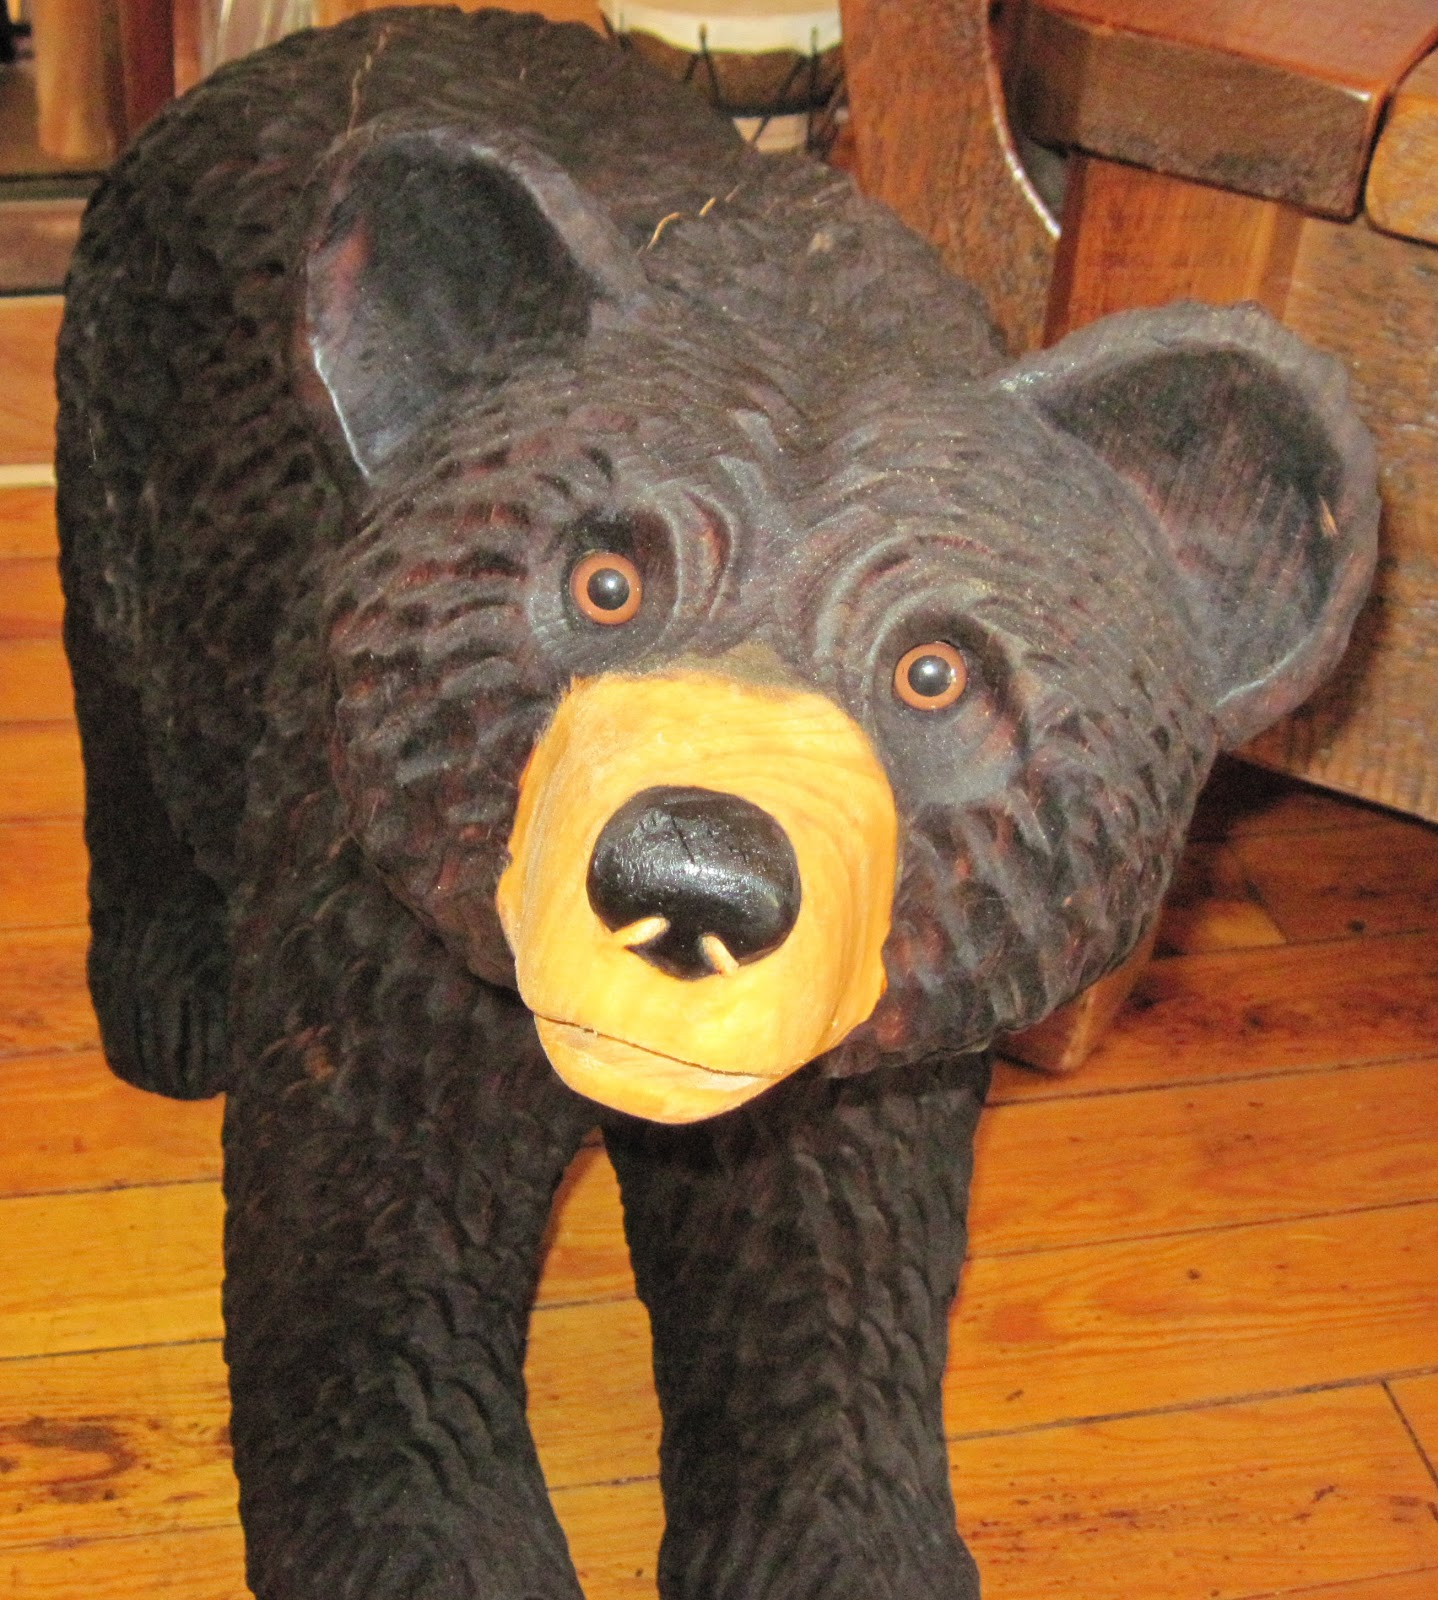 Go rustic chainsaw carved bears